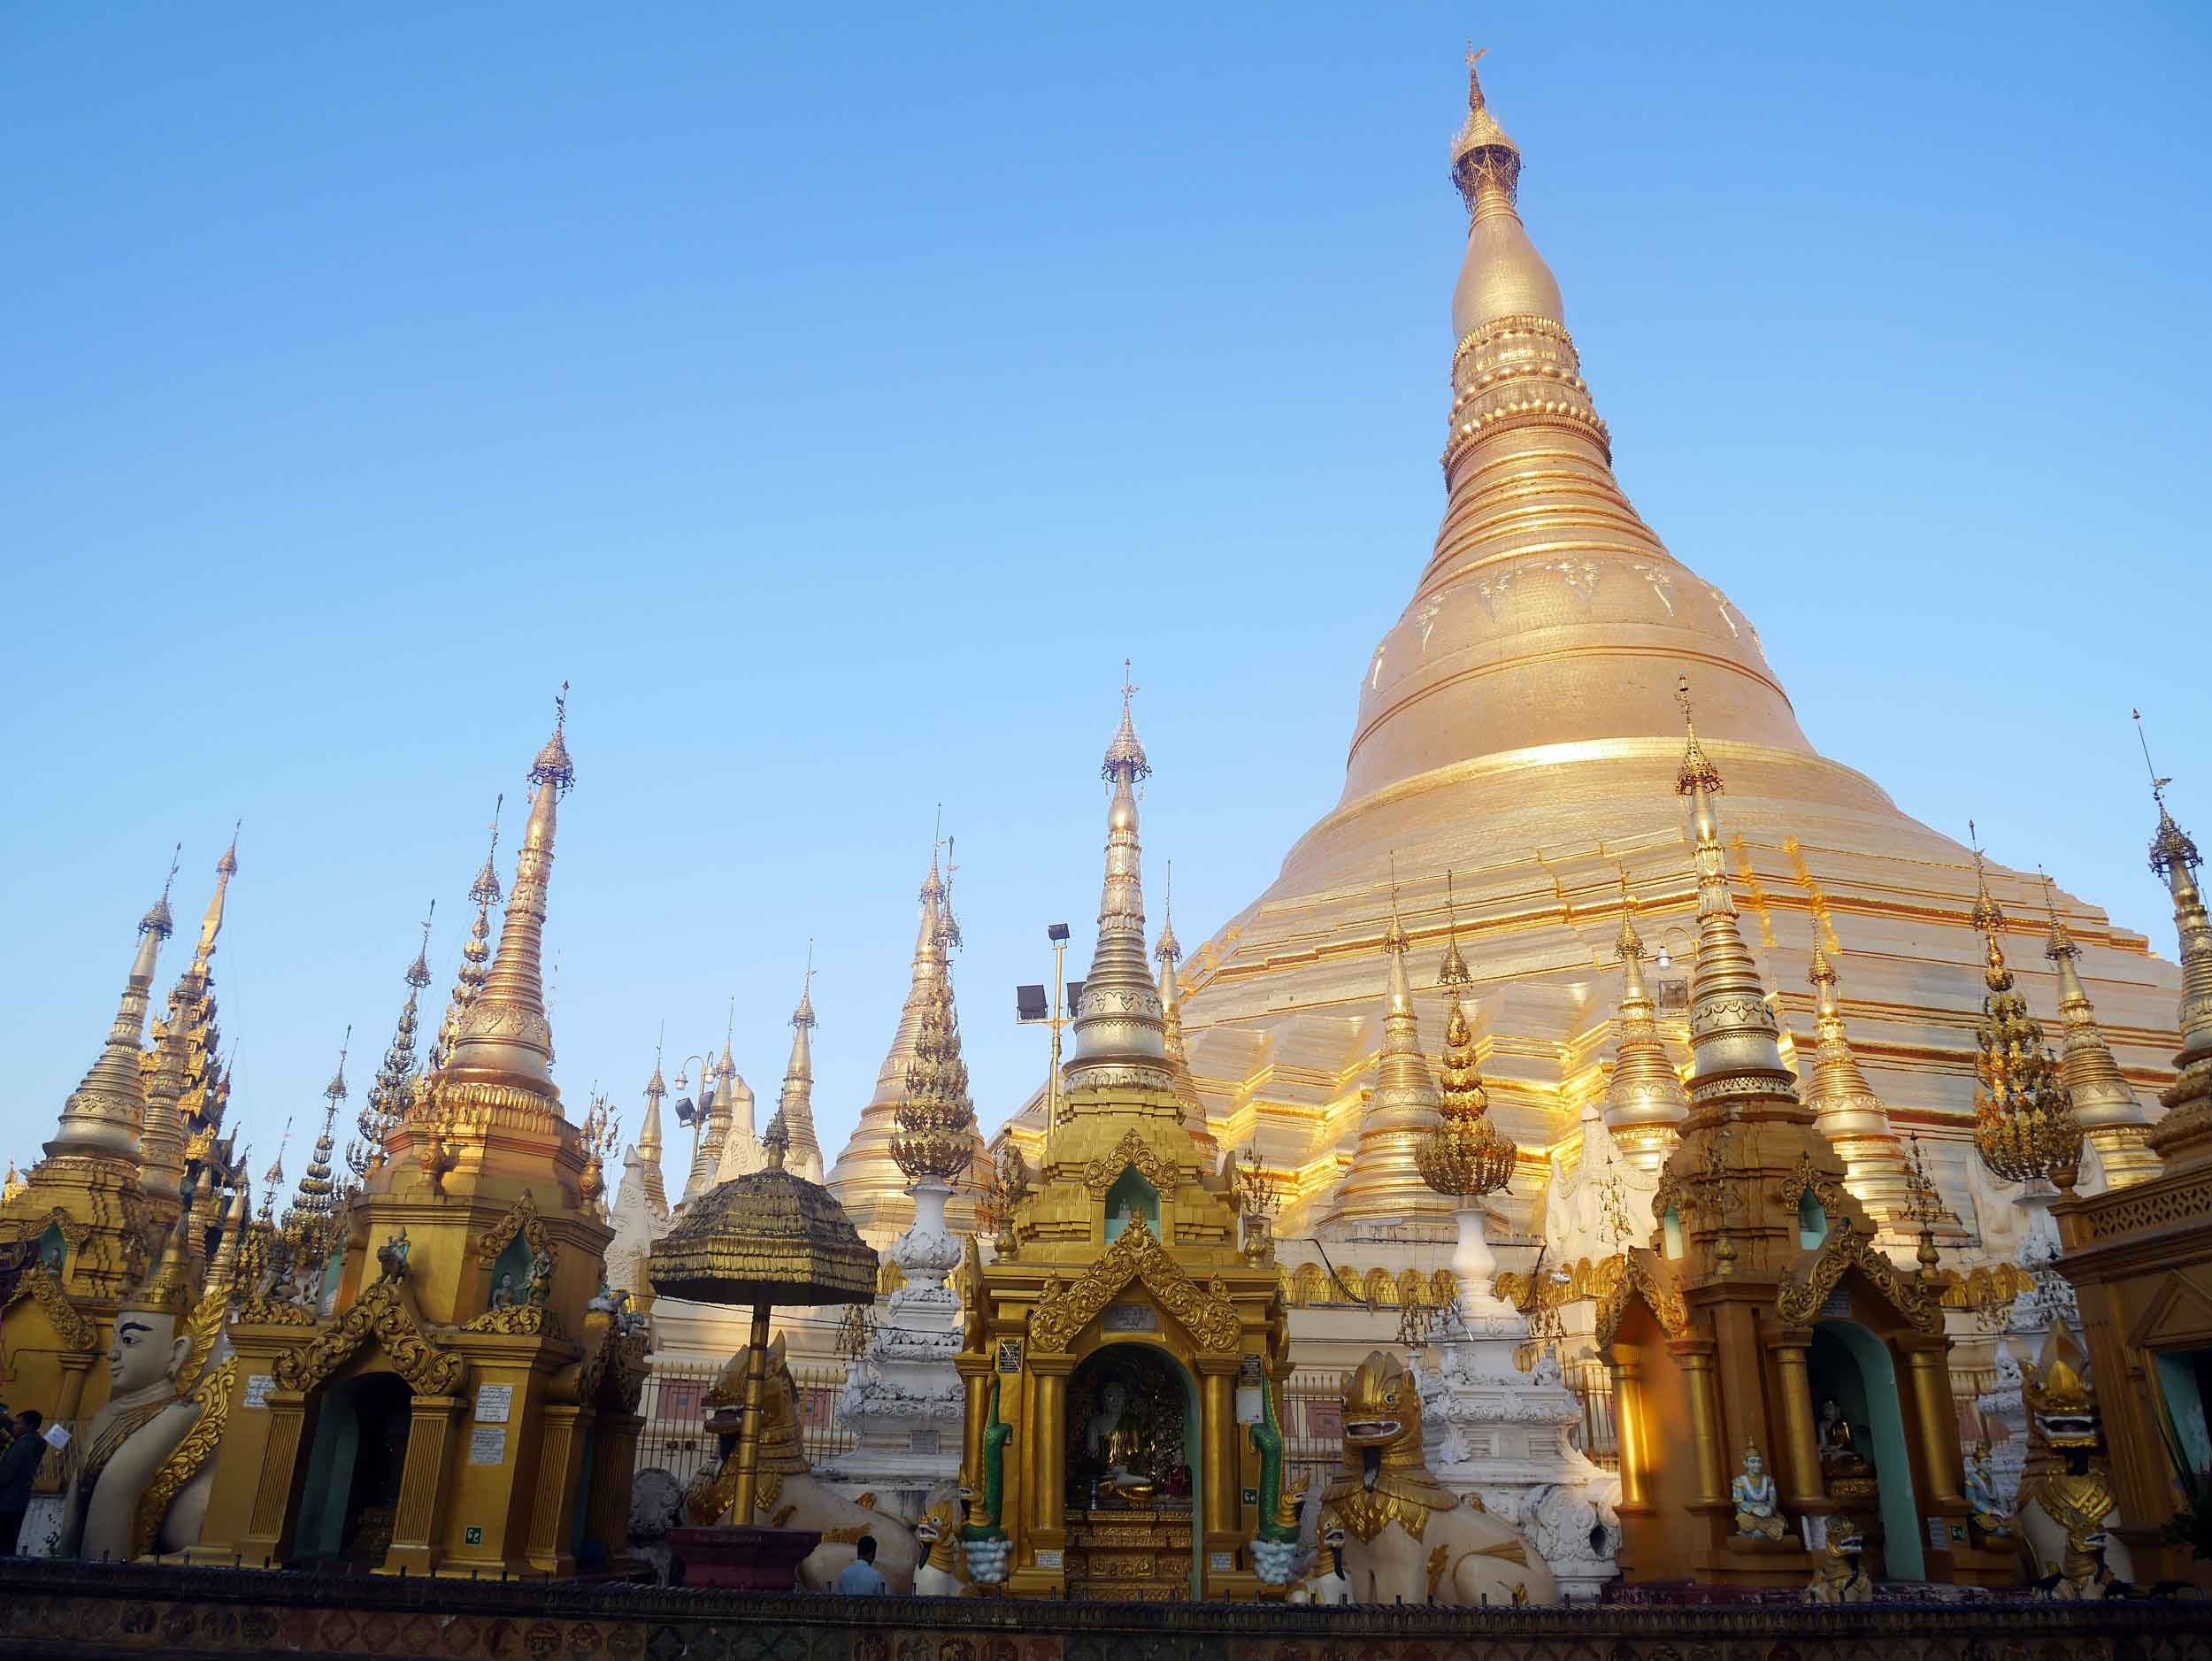 During sun rise as the sky changes color so too does the gold-leaf of the glimmering pagoda (Feb 9).